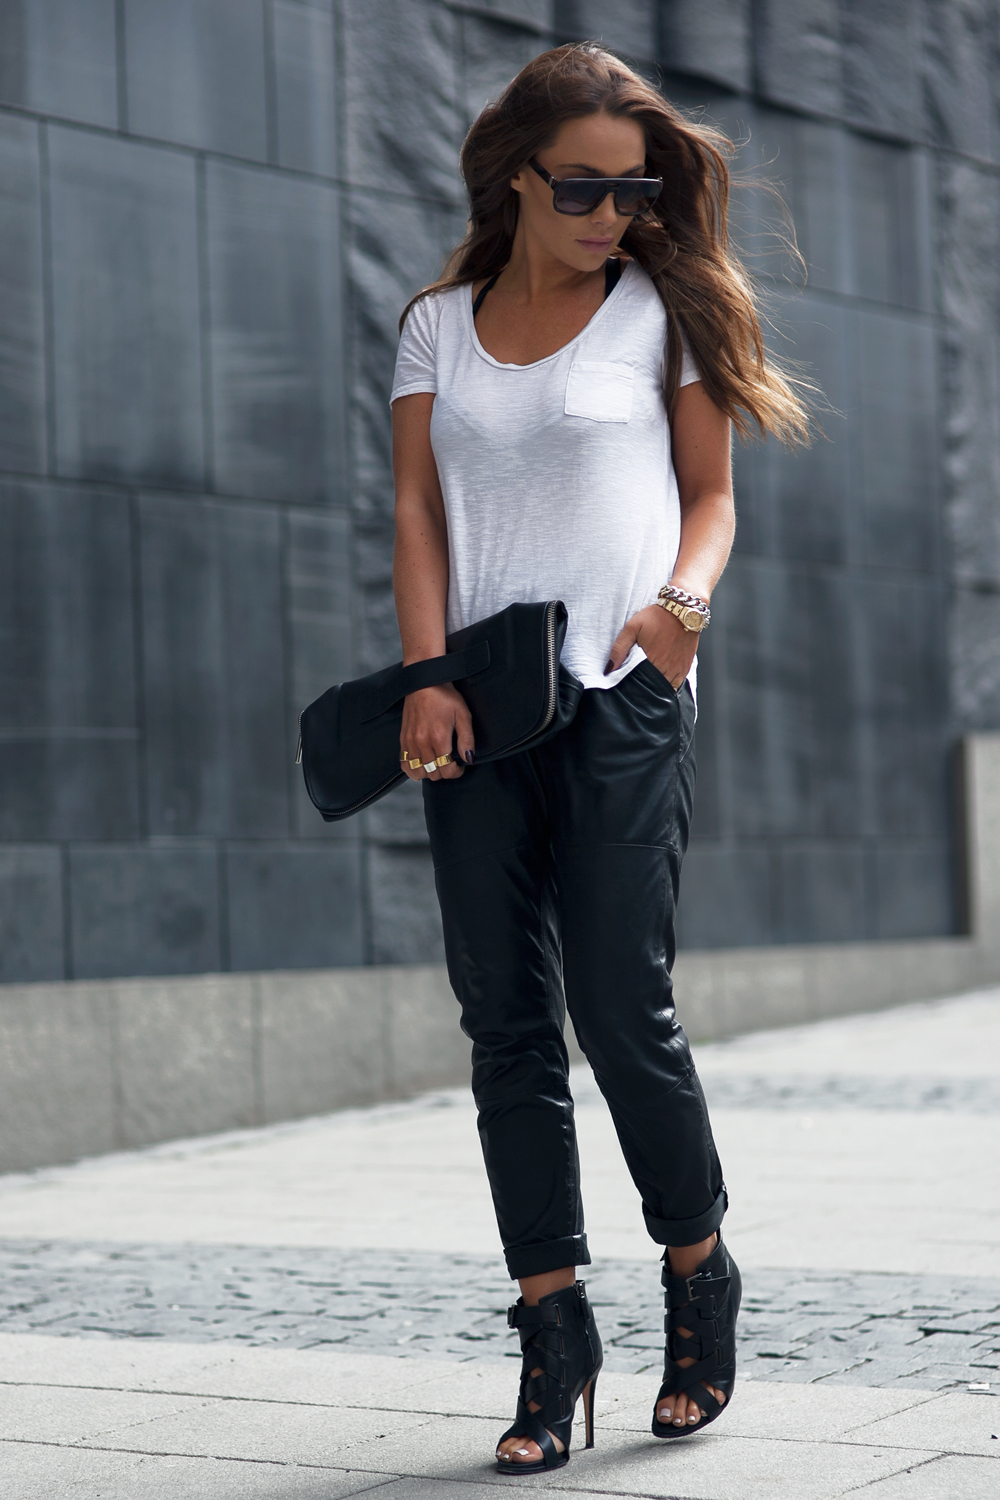 Black And White Fashion Trend: Johanna Olsson is wearing a white River Island tee pair with black leather Designers Remix trousers, DVF heels and a 3.1 Phillip Lim clutch bag